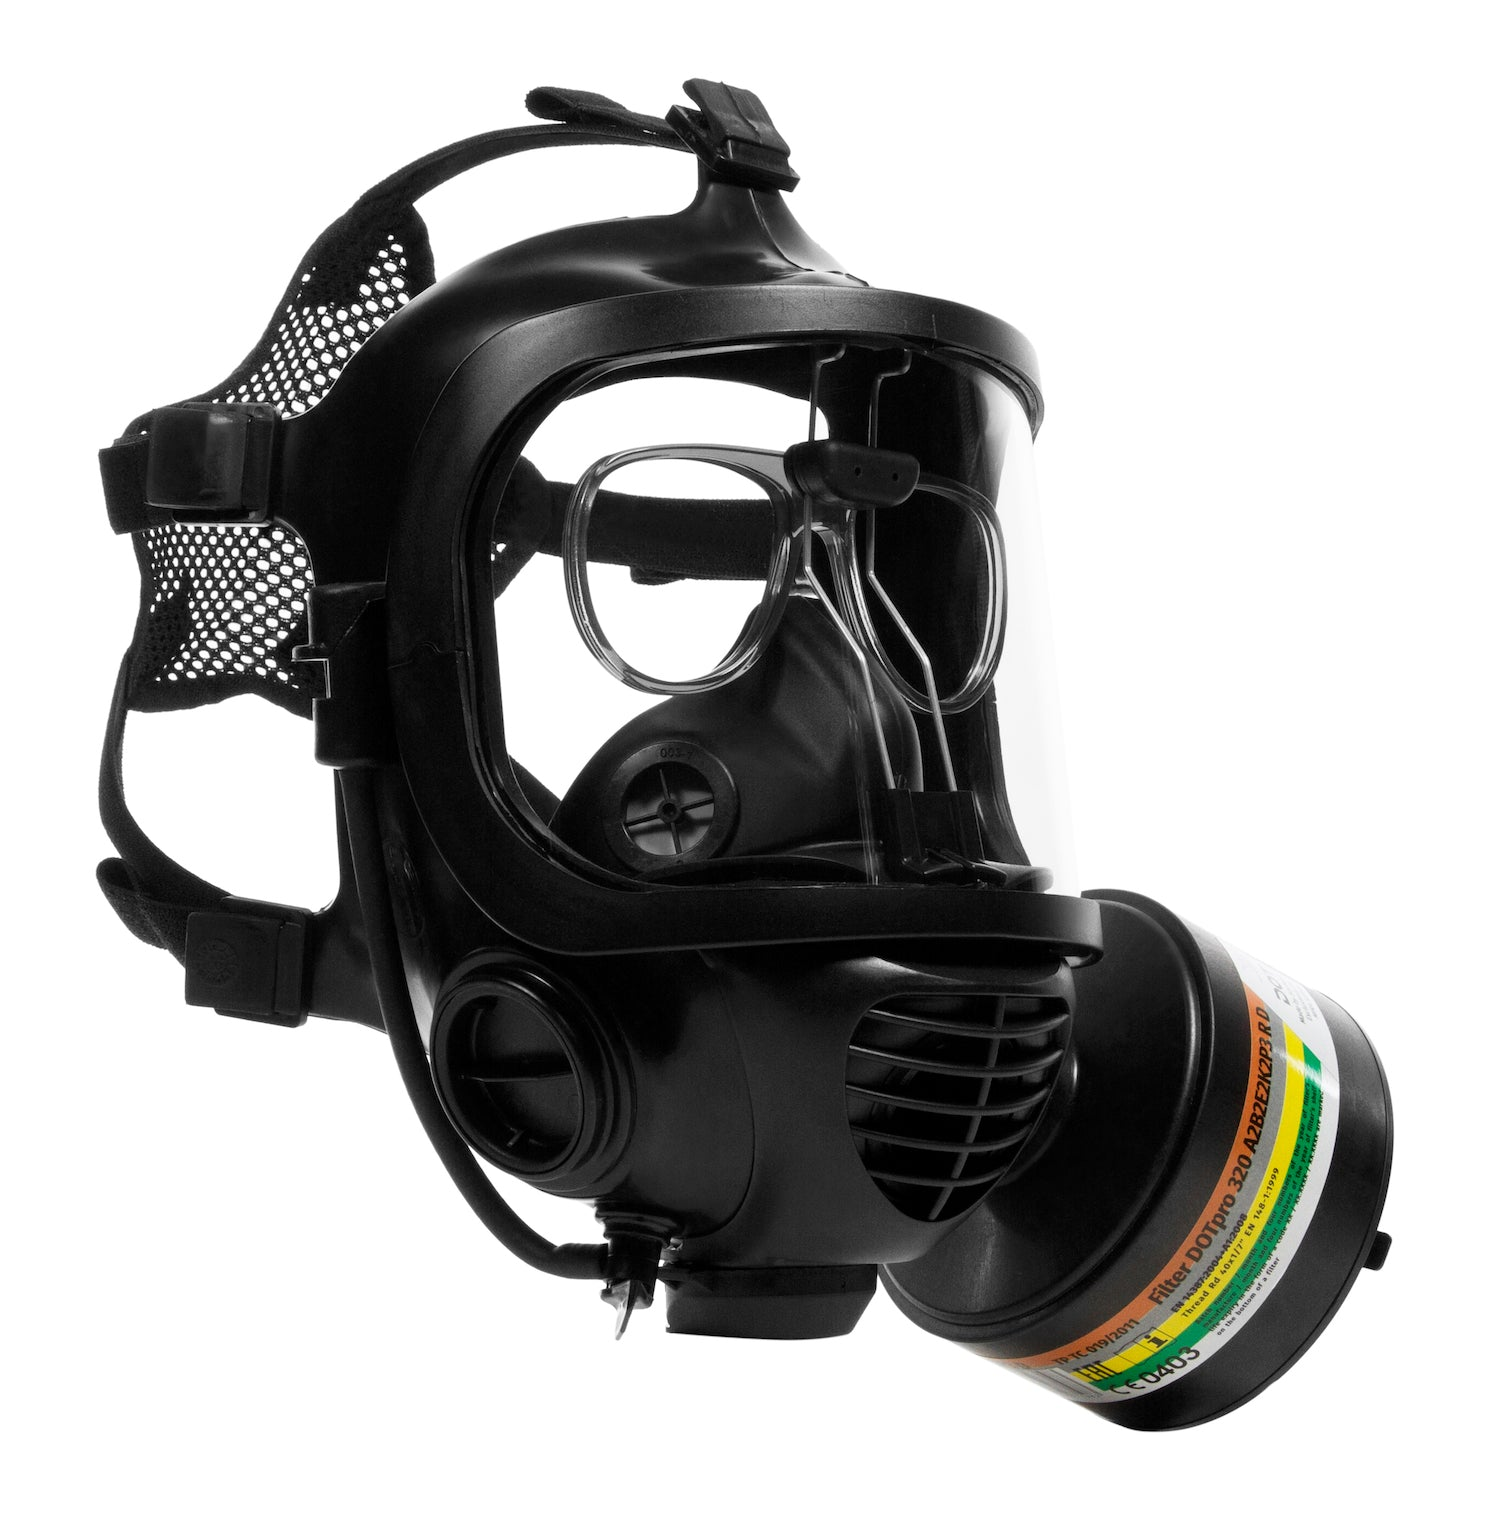 Three quarter view of the CM-6M tactical gas mask with DOTpro 320 40mm gas mask filter